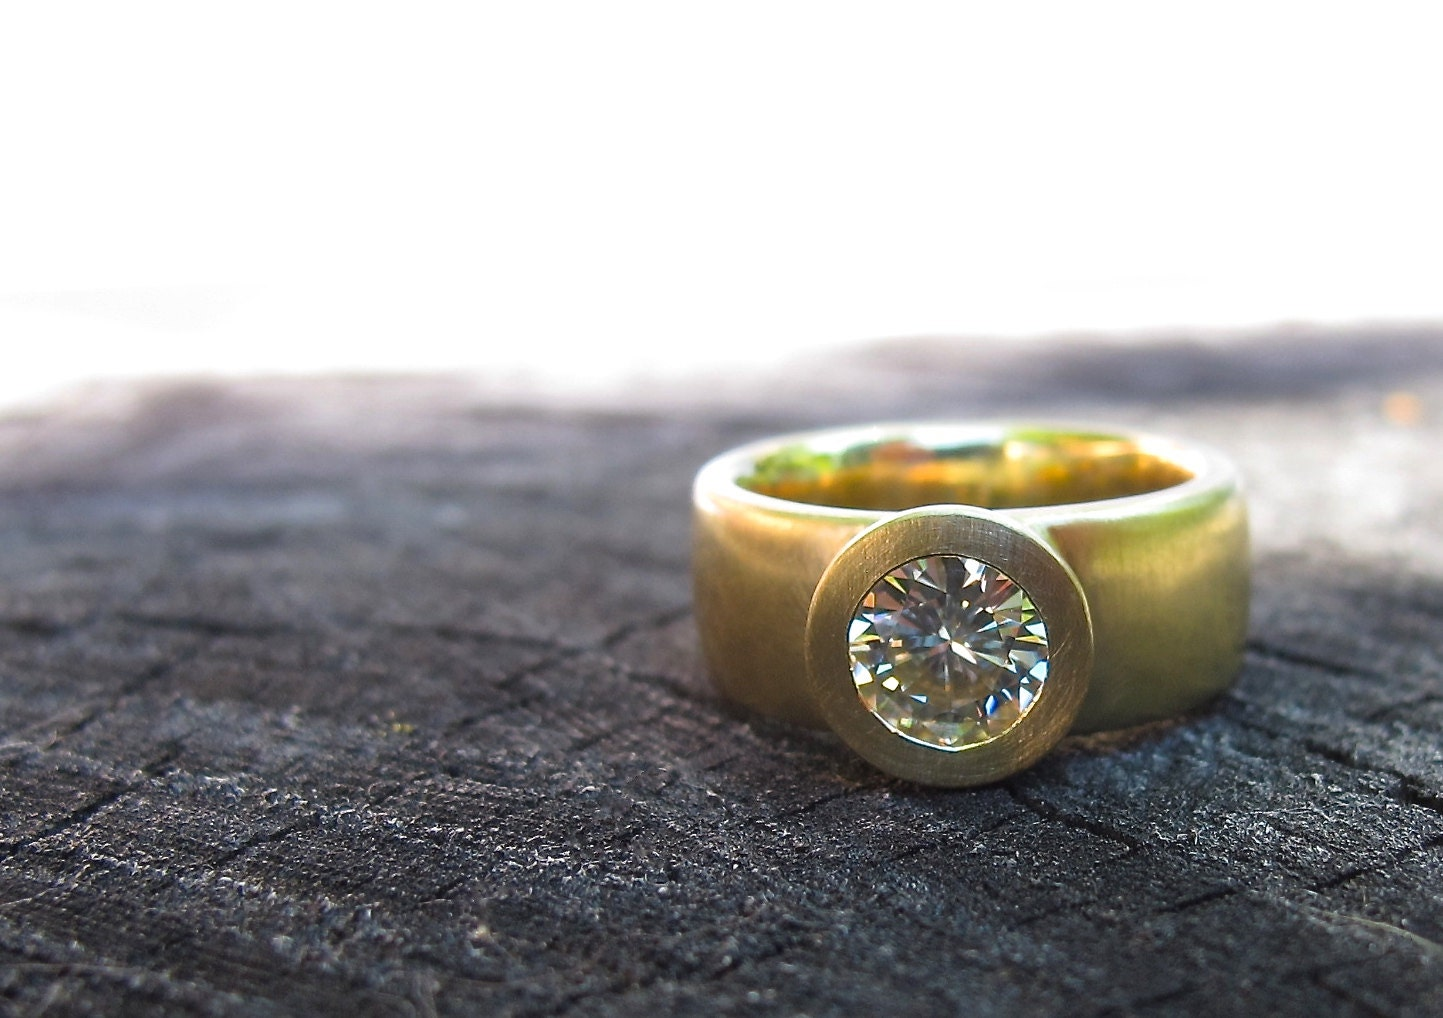 Sunken Treasure Ring 18kt Yellow Gold Wide Band Engagement